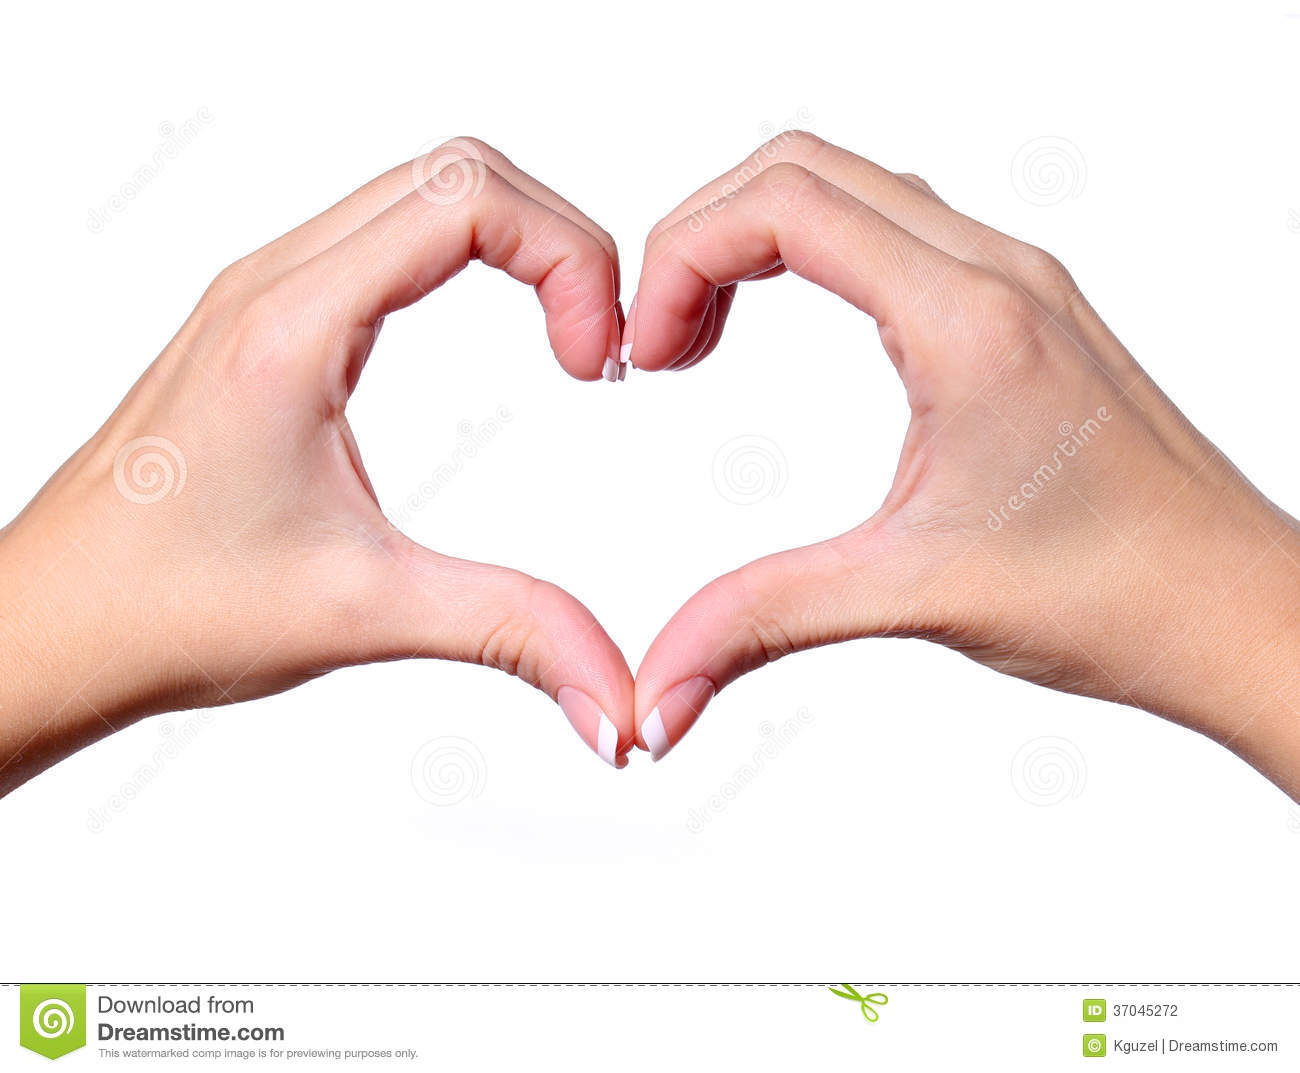 Female hands making a heart shape isolated